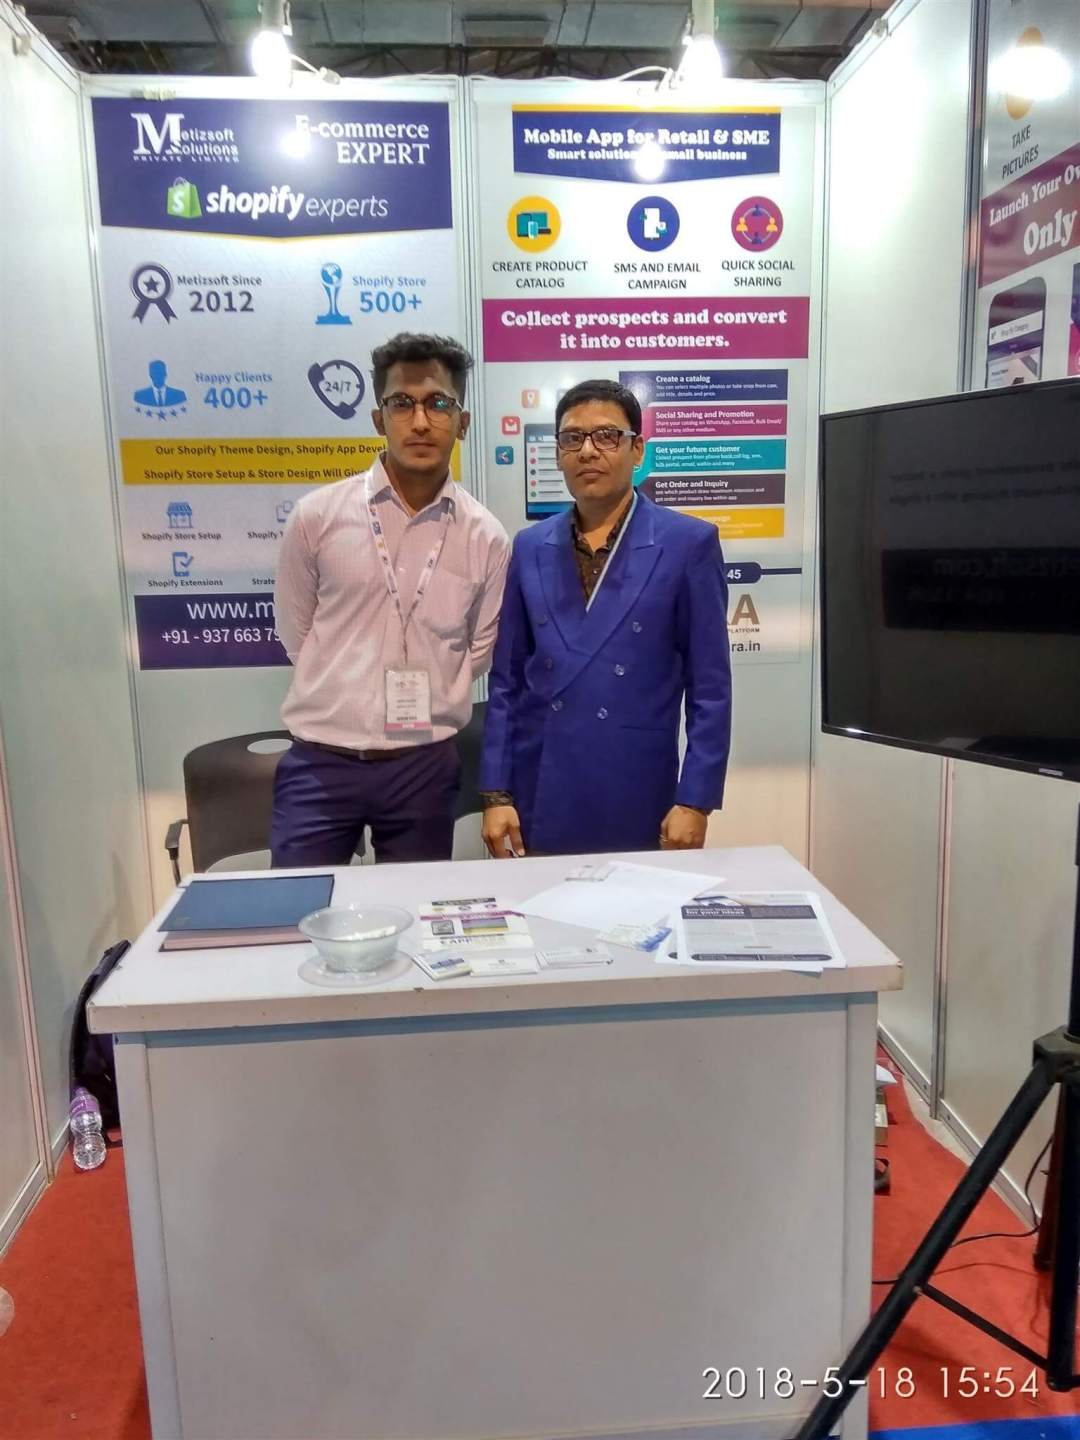 India e-commerce Expo 2018